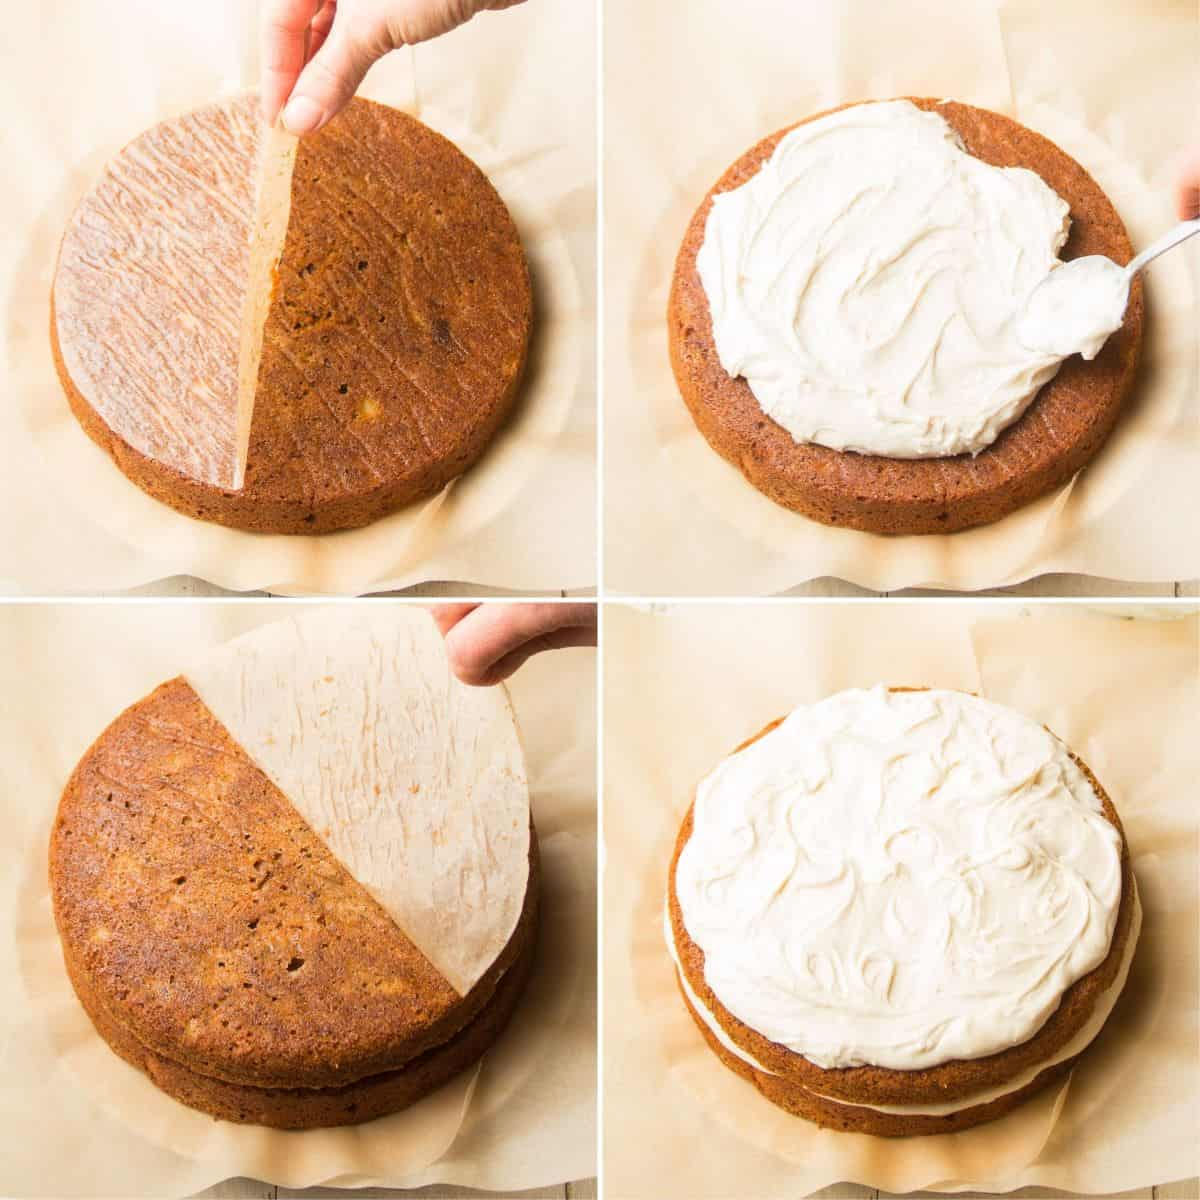 Collage Showing Steps for Assembling and Frosting Vegan Carrot Cake